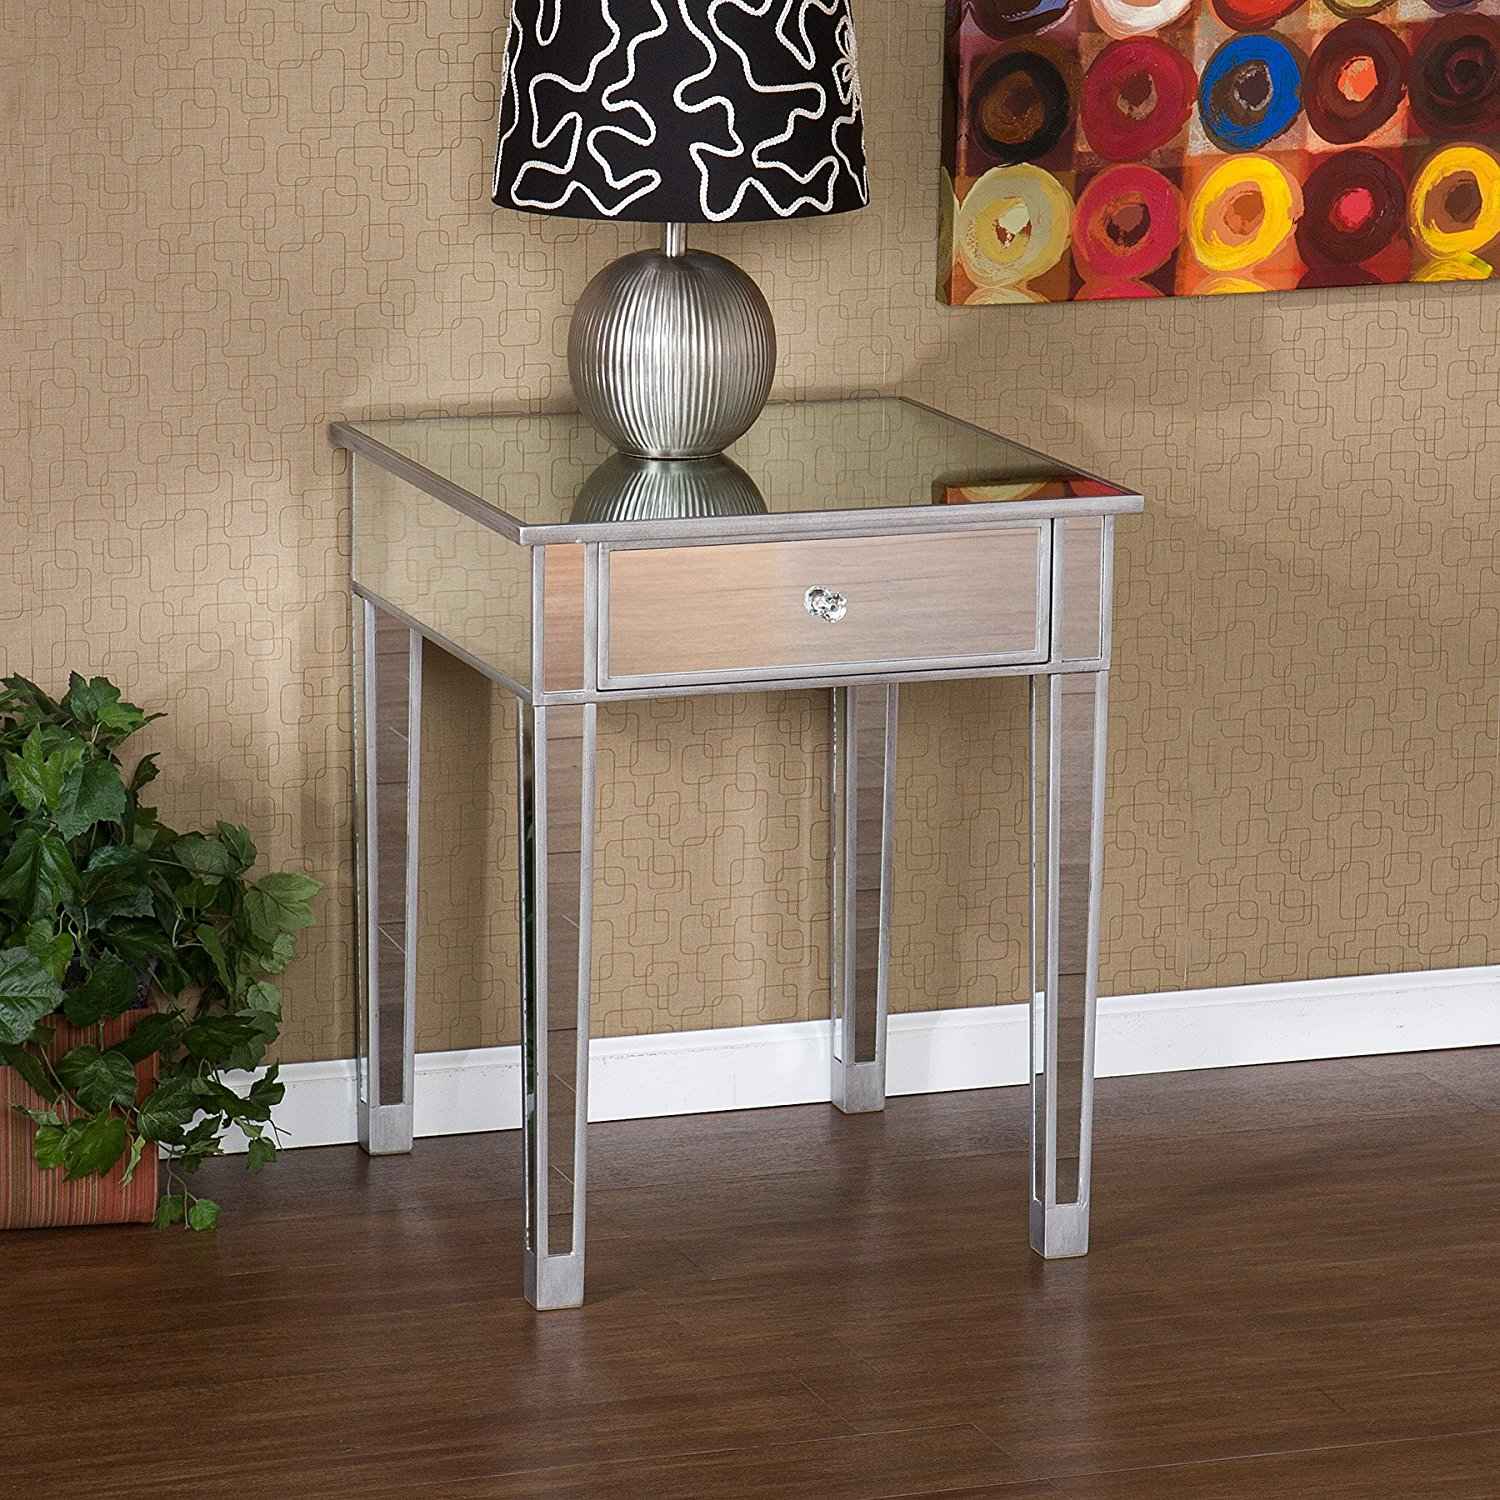 mirrored accent table with drawer house decorations very attractive design mirage kitchen dining nightstand home furniture restoration office storage cabinets craigslist chairs